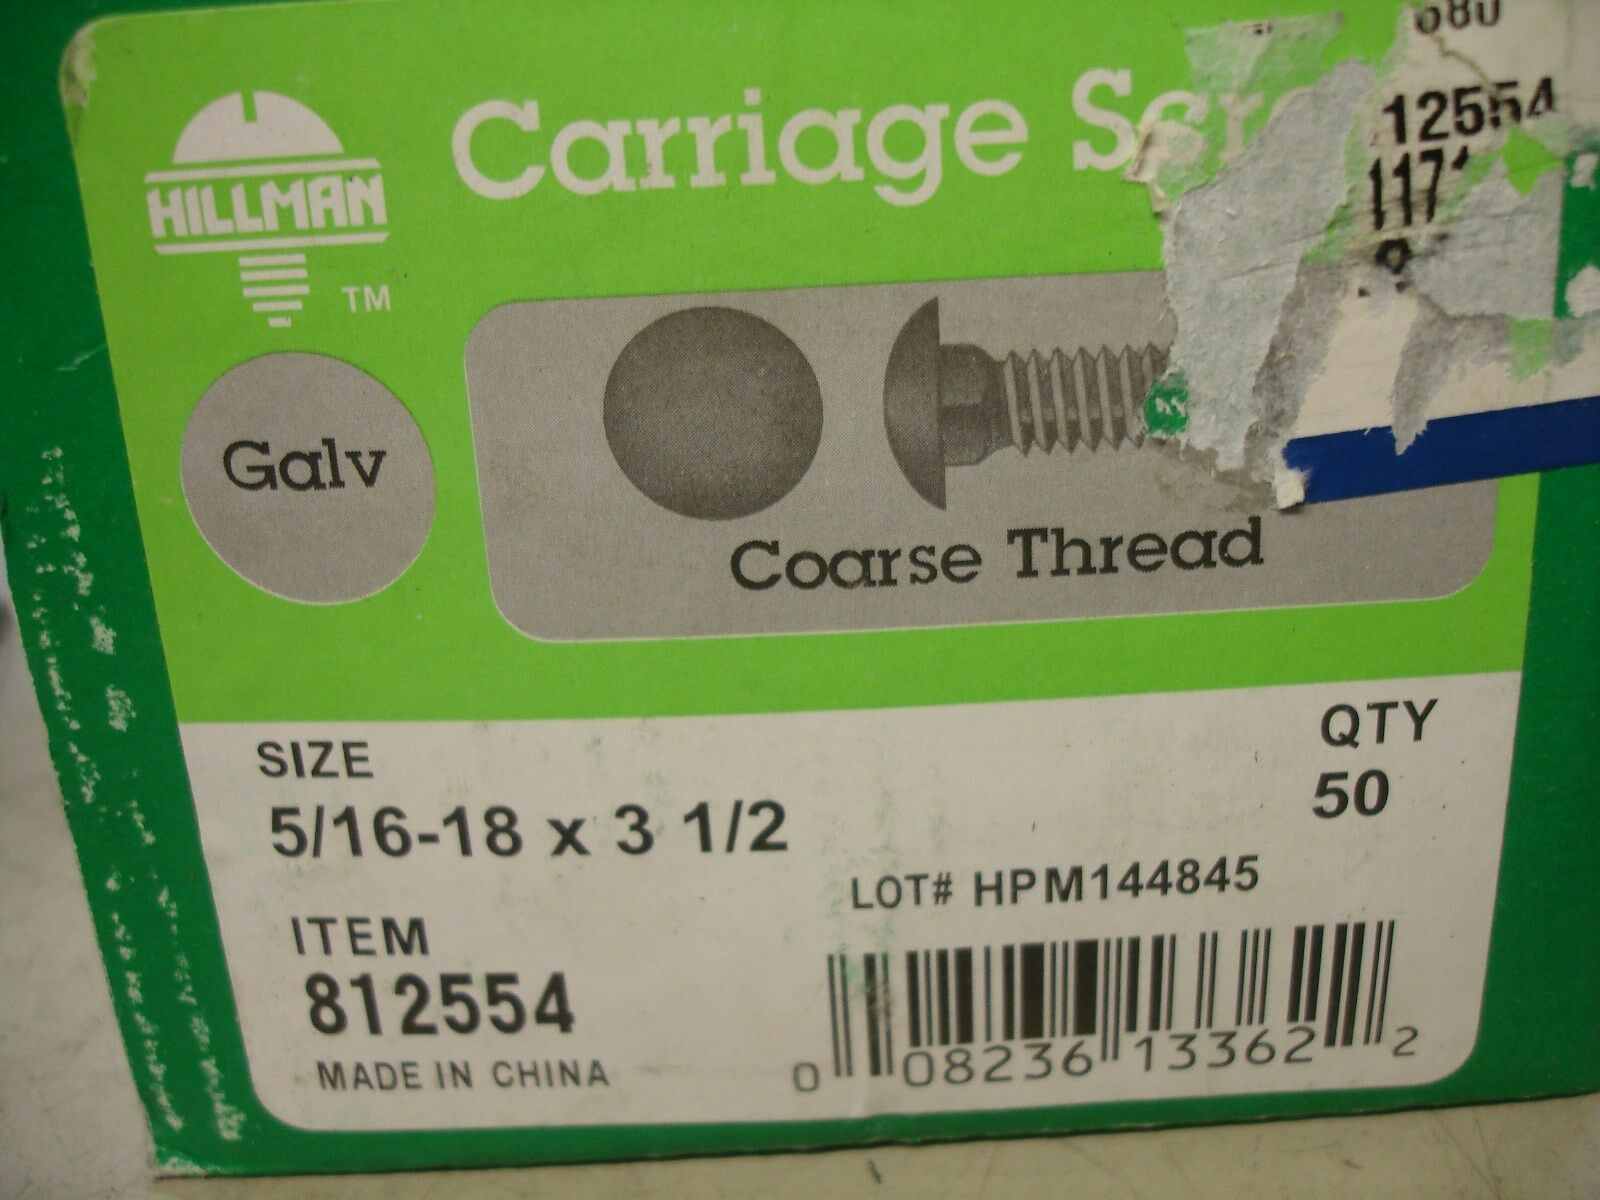 Hot Dipped Galvanized Carriage Bolts 5//16-18 x 3-1//2 500pc